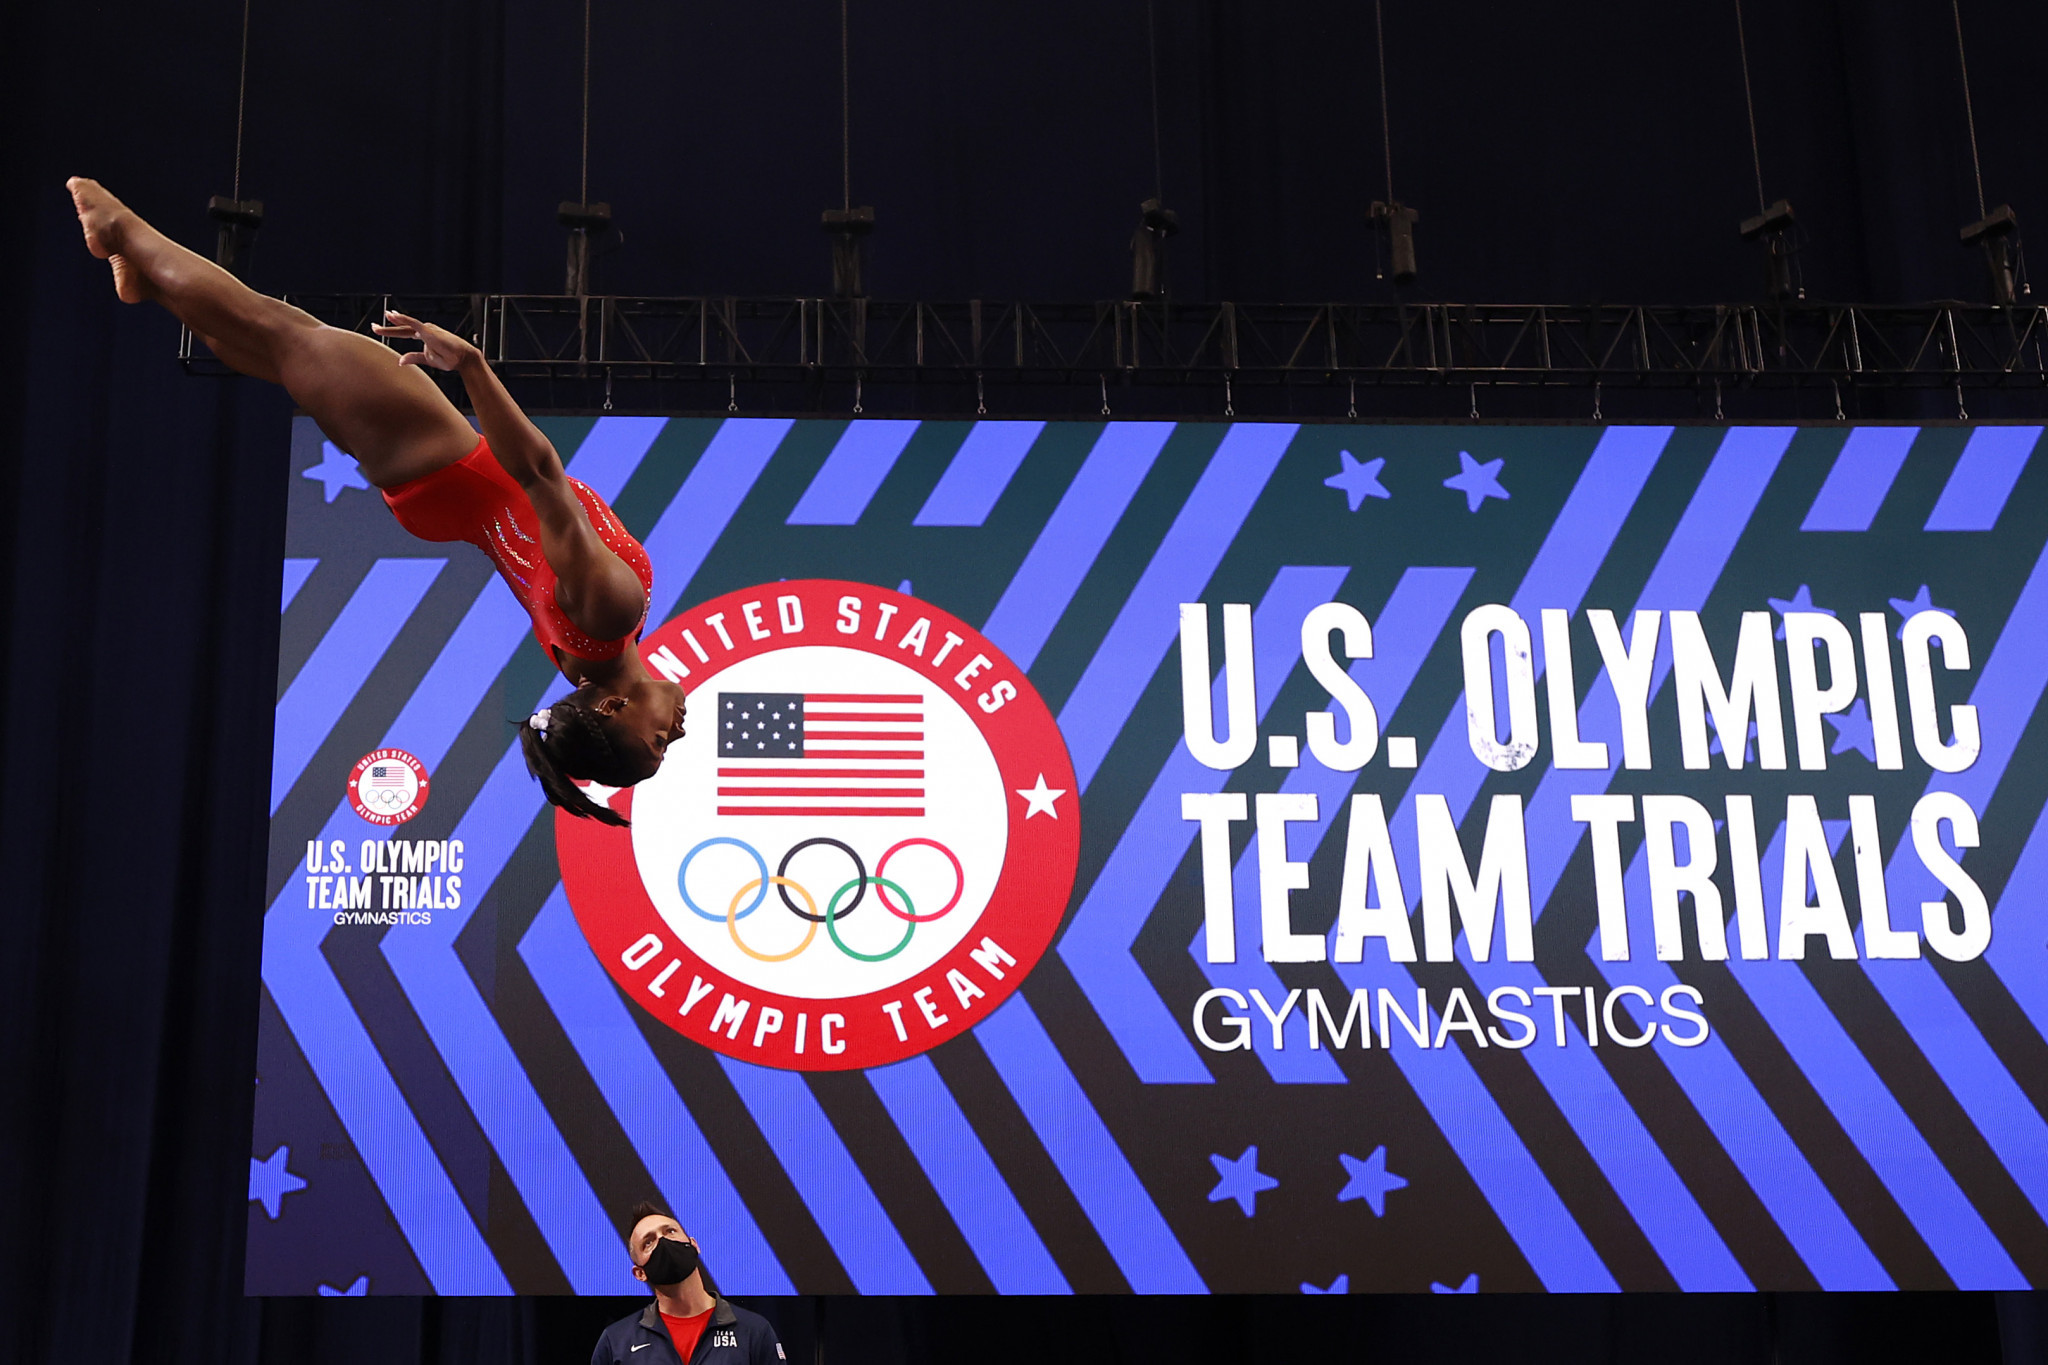 United States names its second largest Olympic team to compete at Tokyo 2020